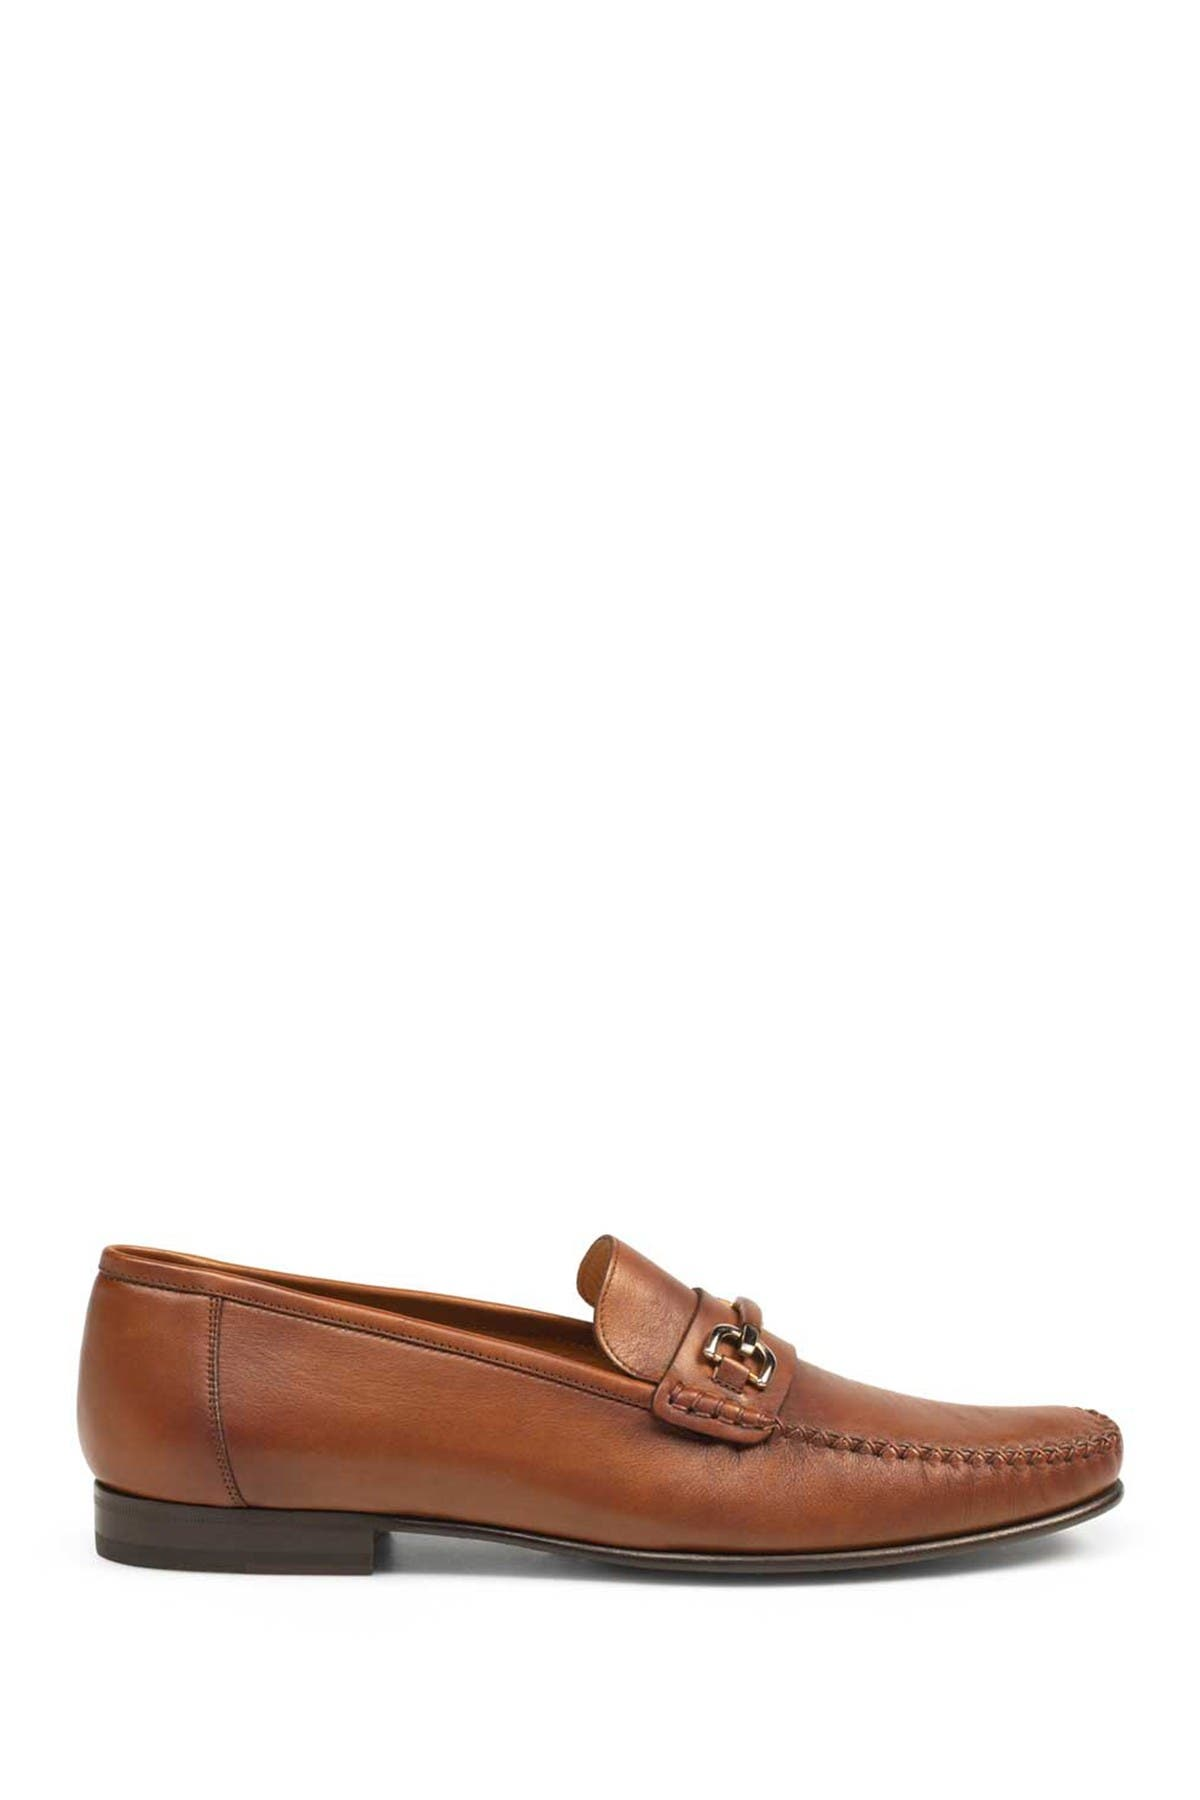 Image of Mezlan Ian Bit Loafer